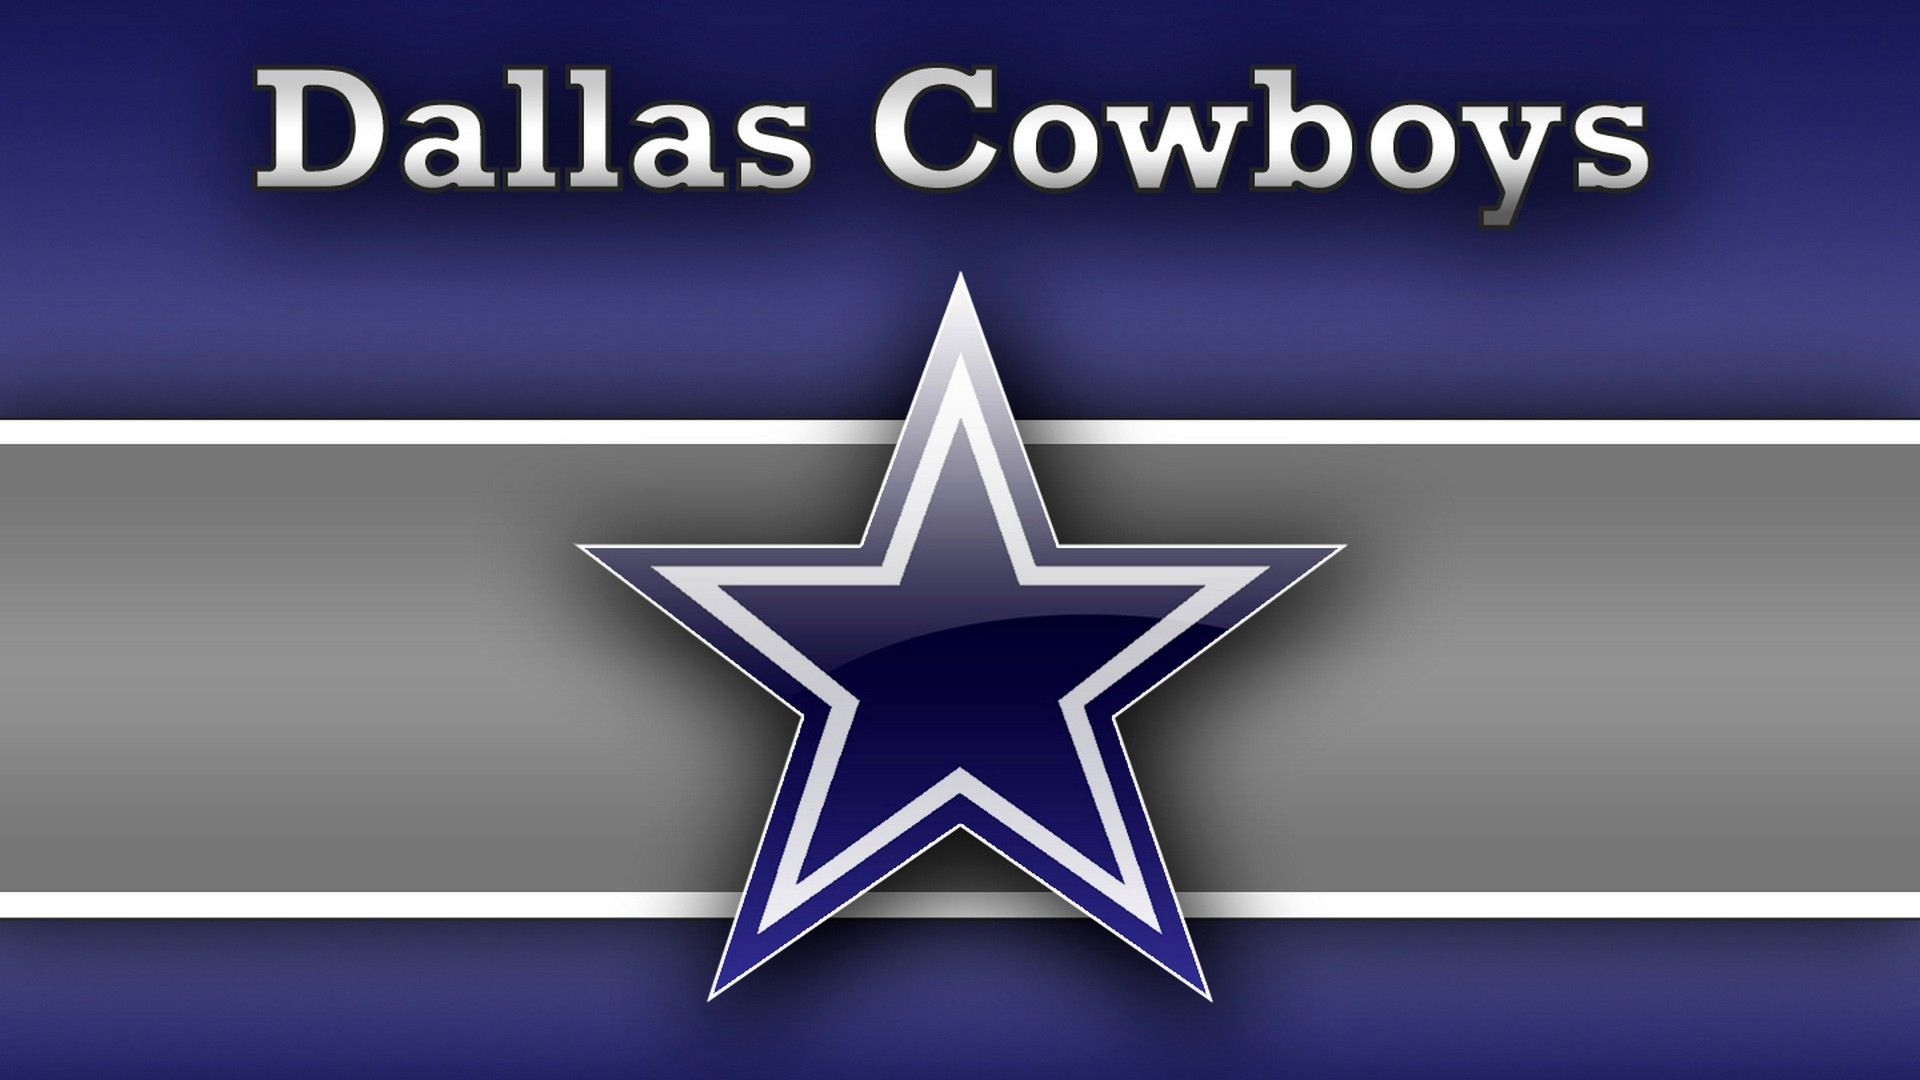 Dallas Cowboys Wallpaper HD Dallas cowboys images